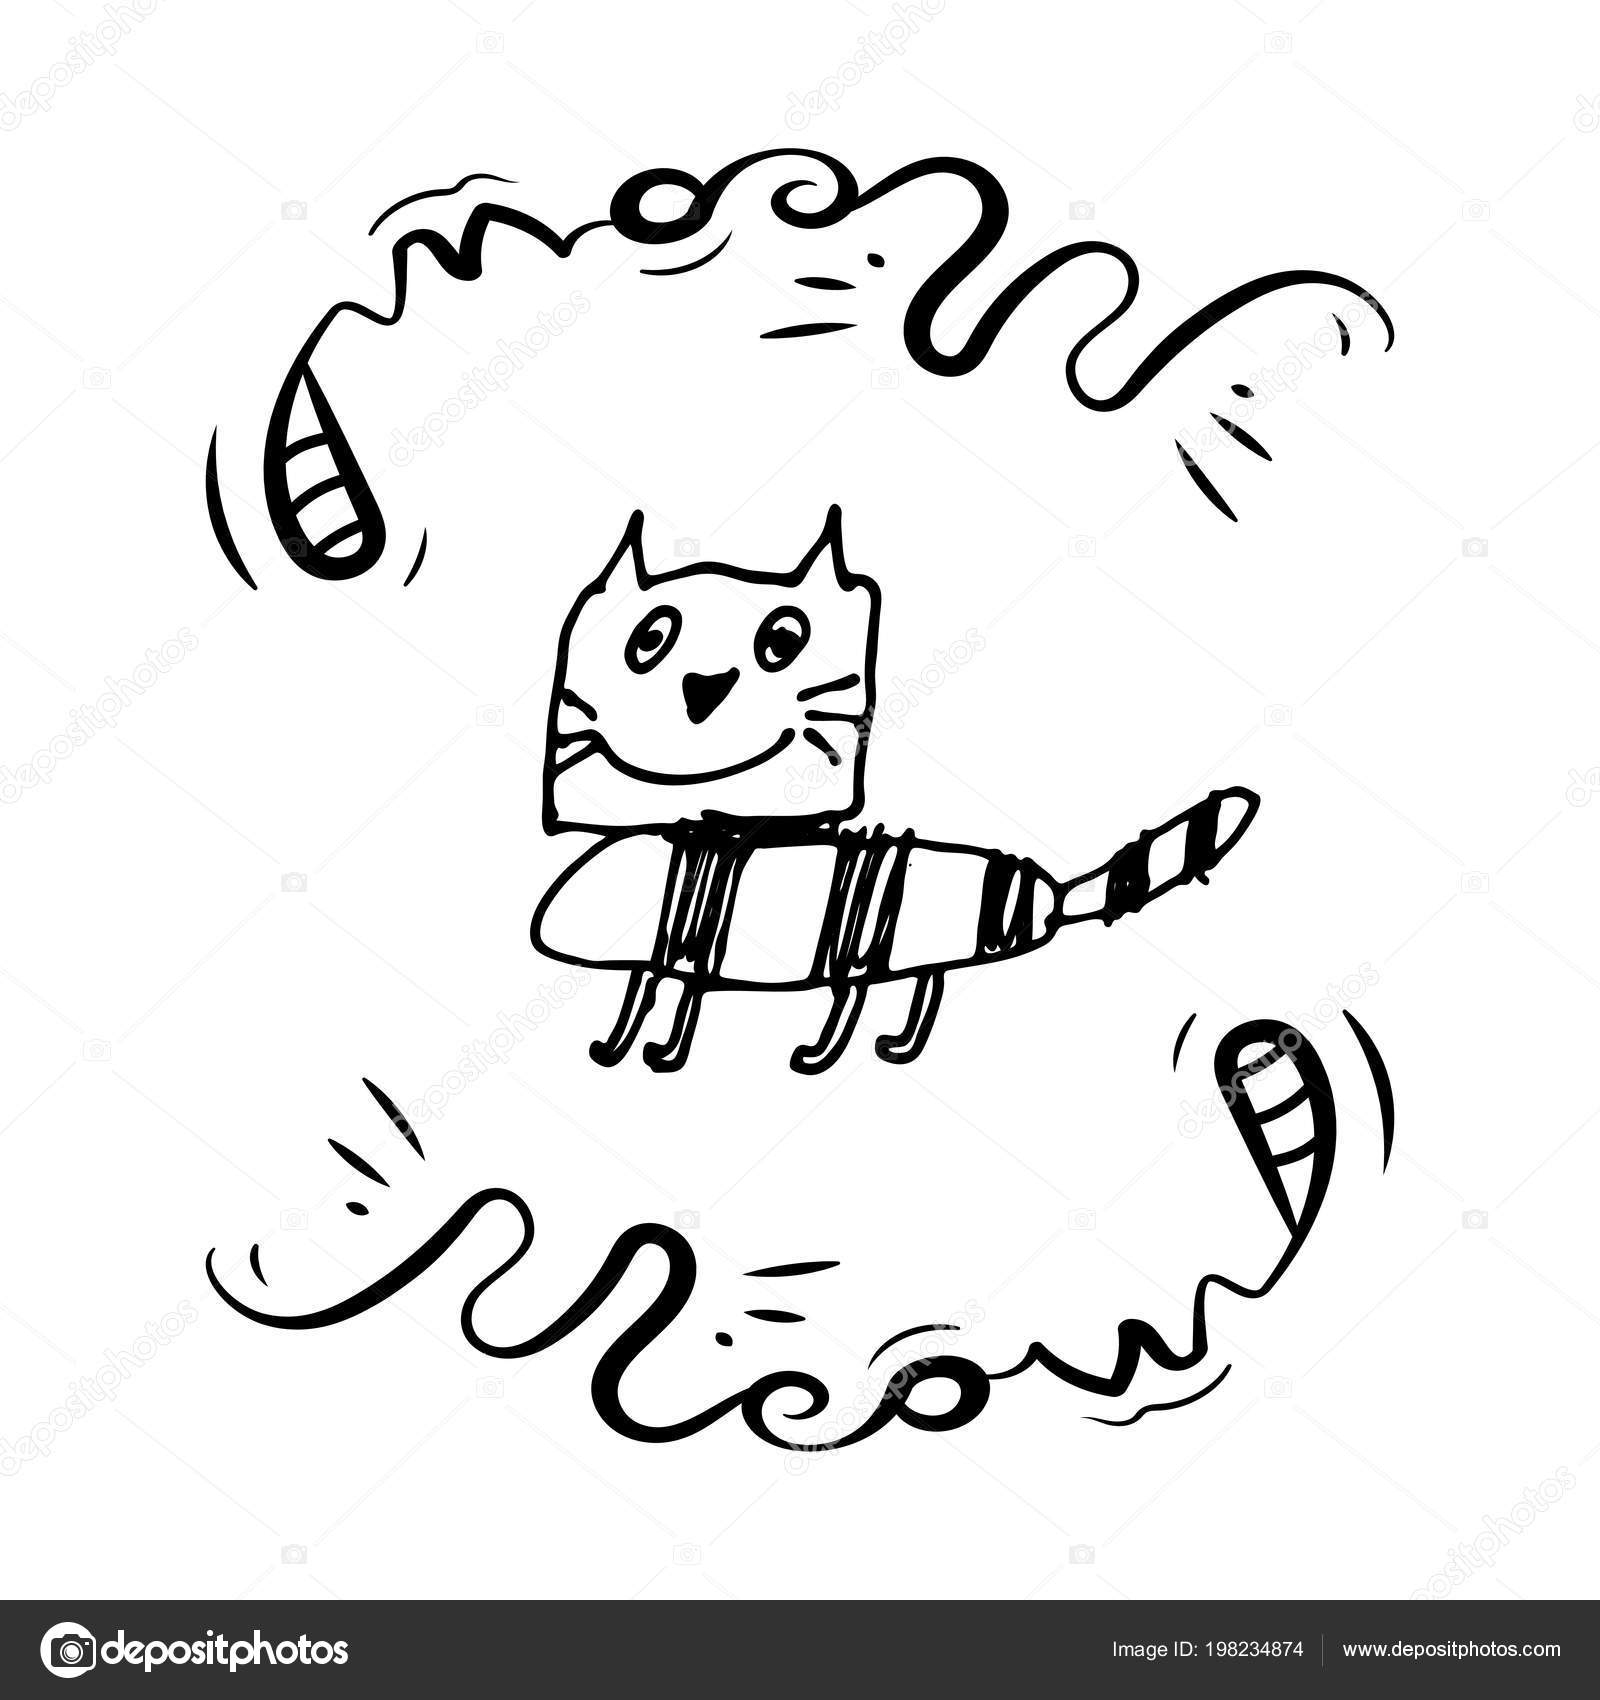 Dessines Main Noir Blanc Simple Doodle Cat Style Grunge Dessin